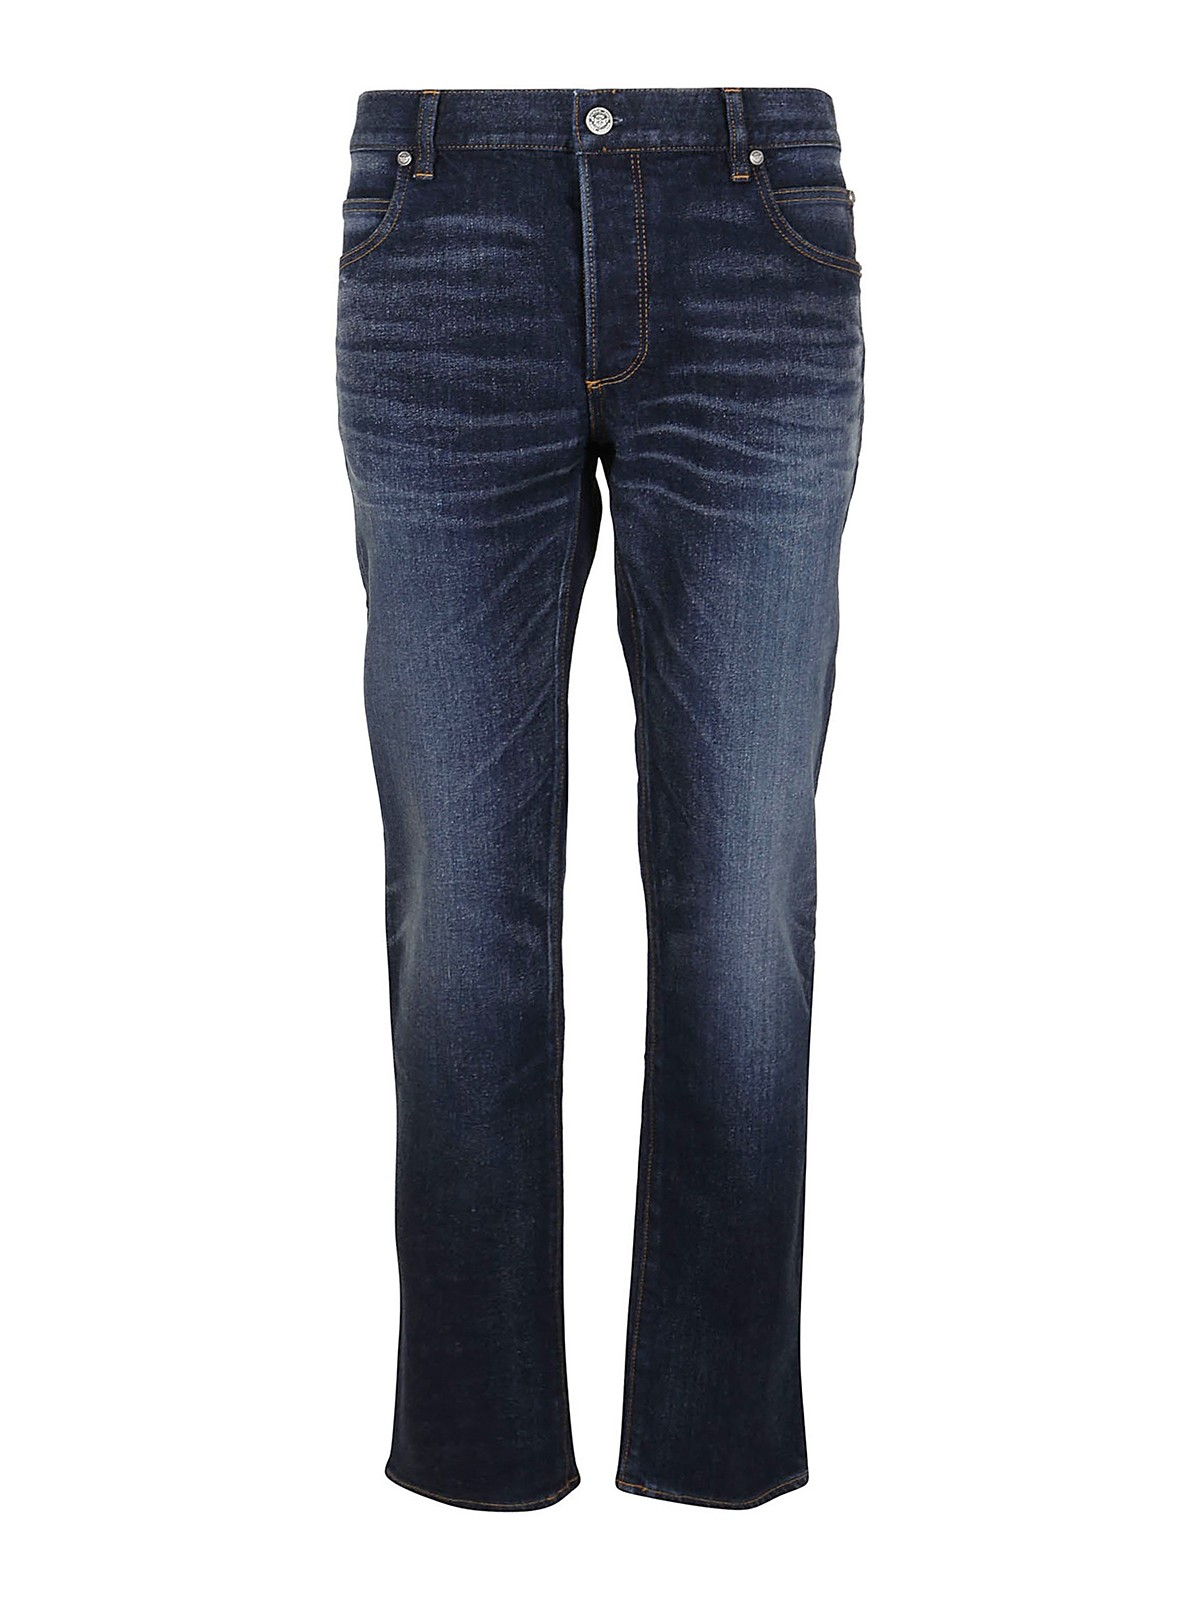 Balmain Tapered jeans B EMBROIDERY JEANS